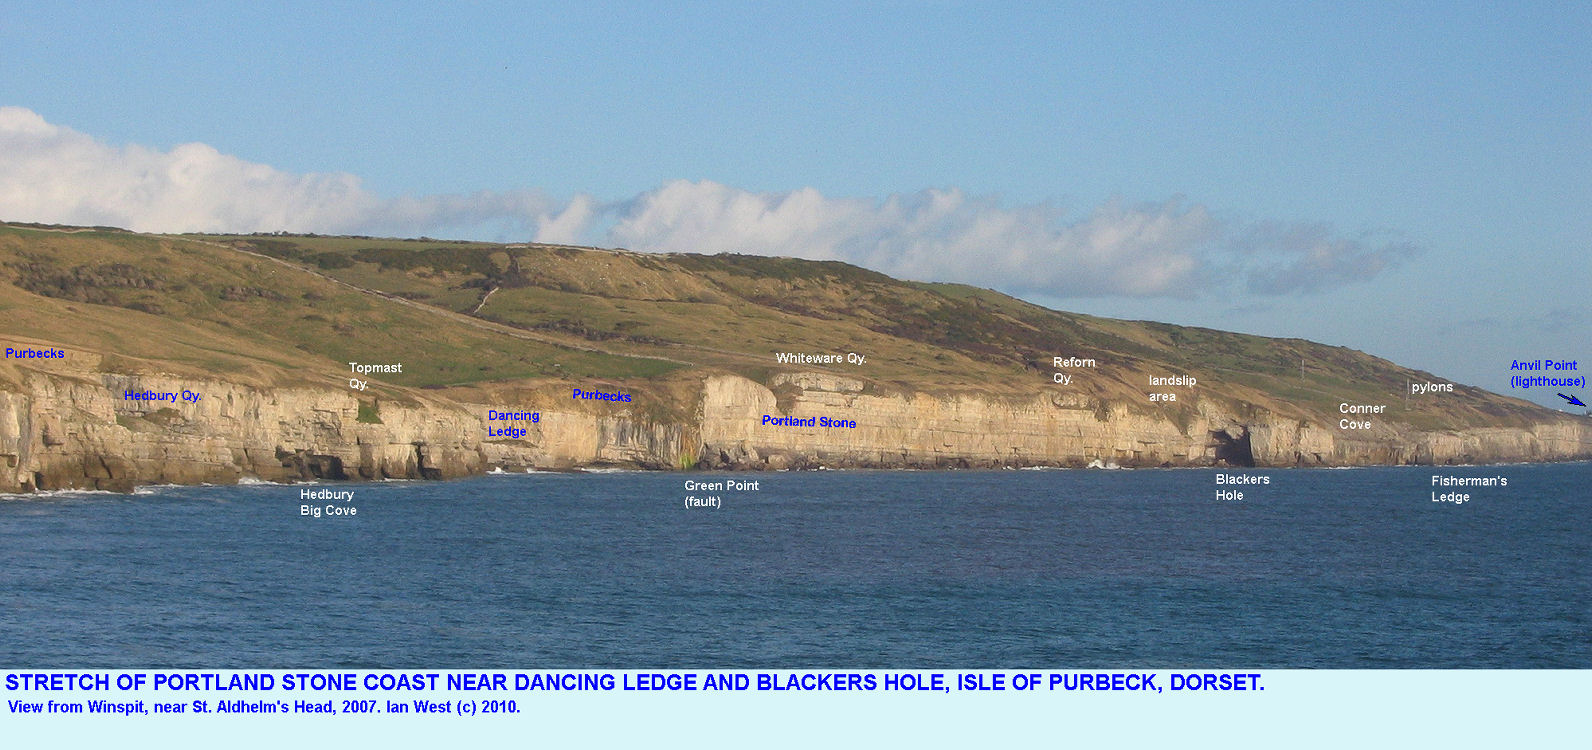 A view of the Portland Stone coast around Dancing Ledge and Blackers Hole, near Swanage, Isle of Purbeck, Dorset, from Winspit in 2007